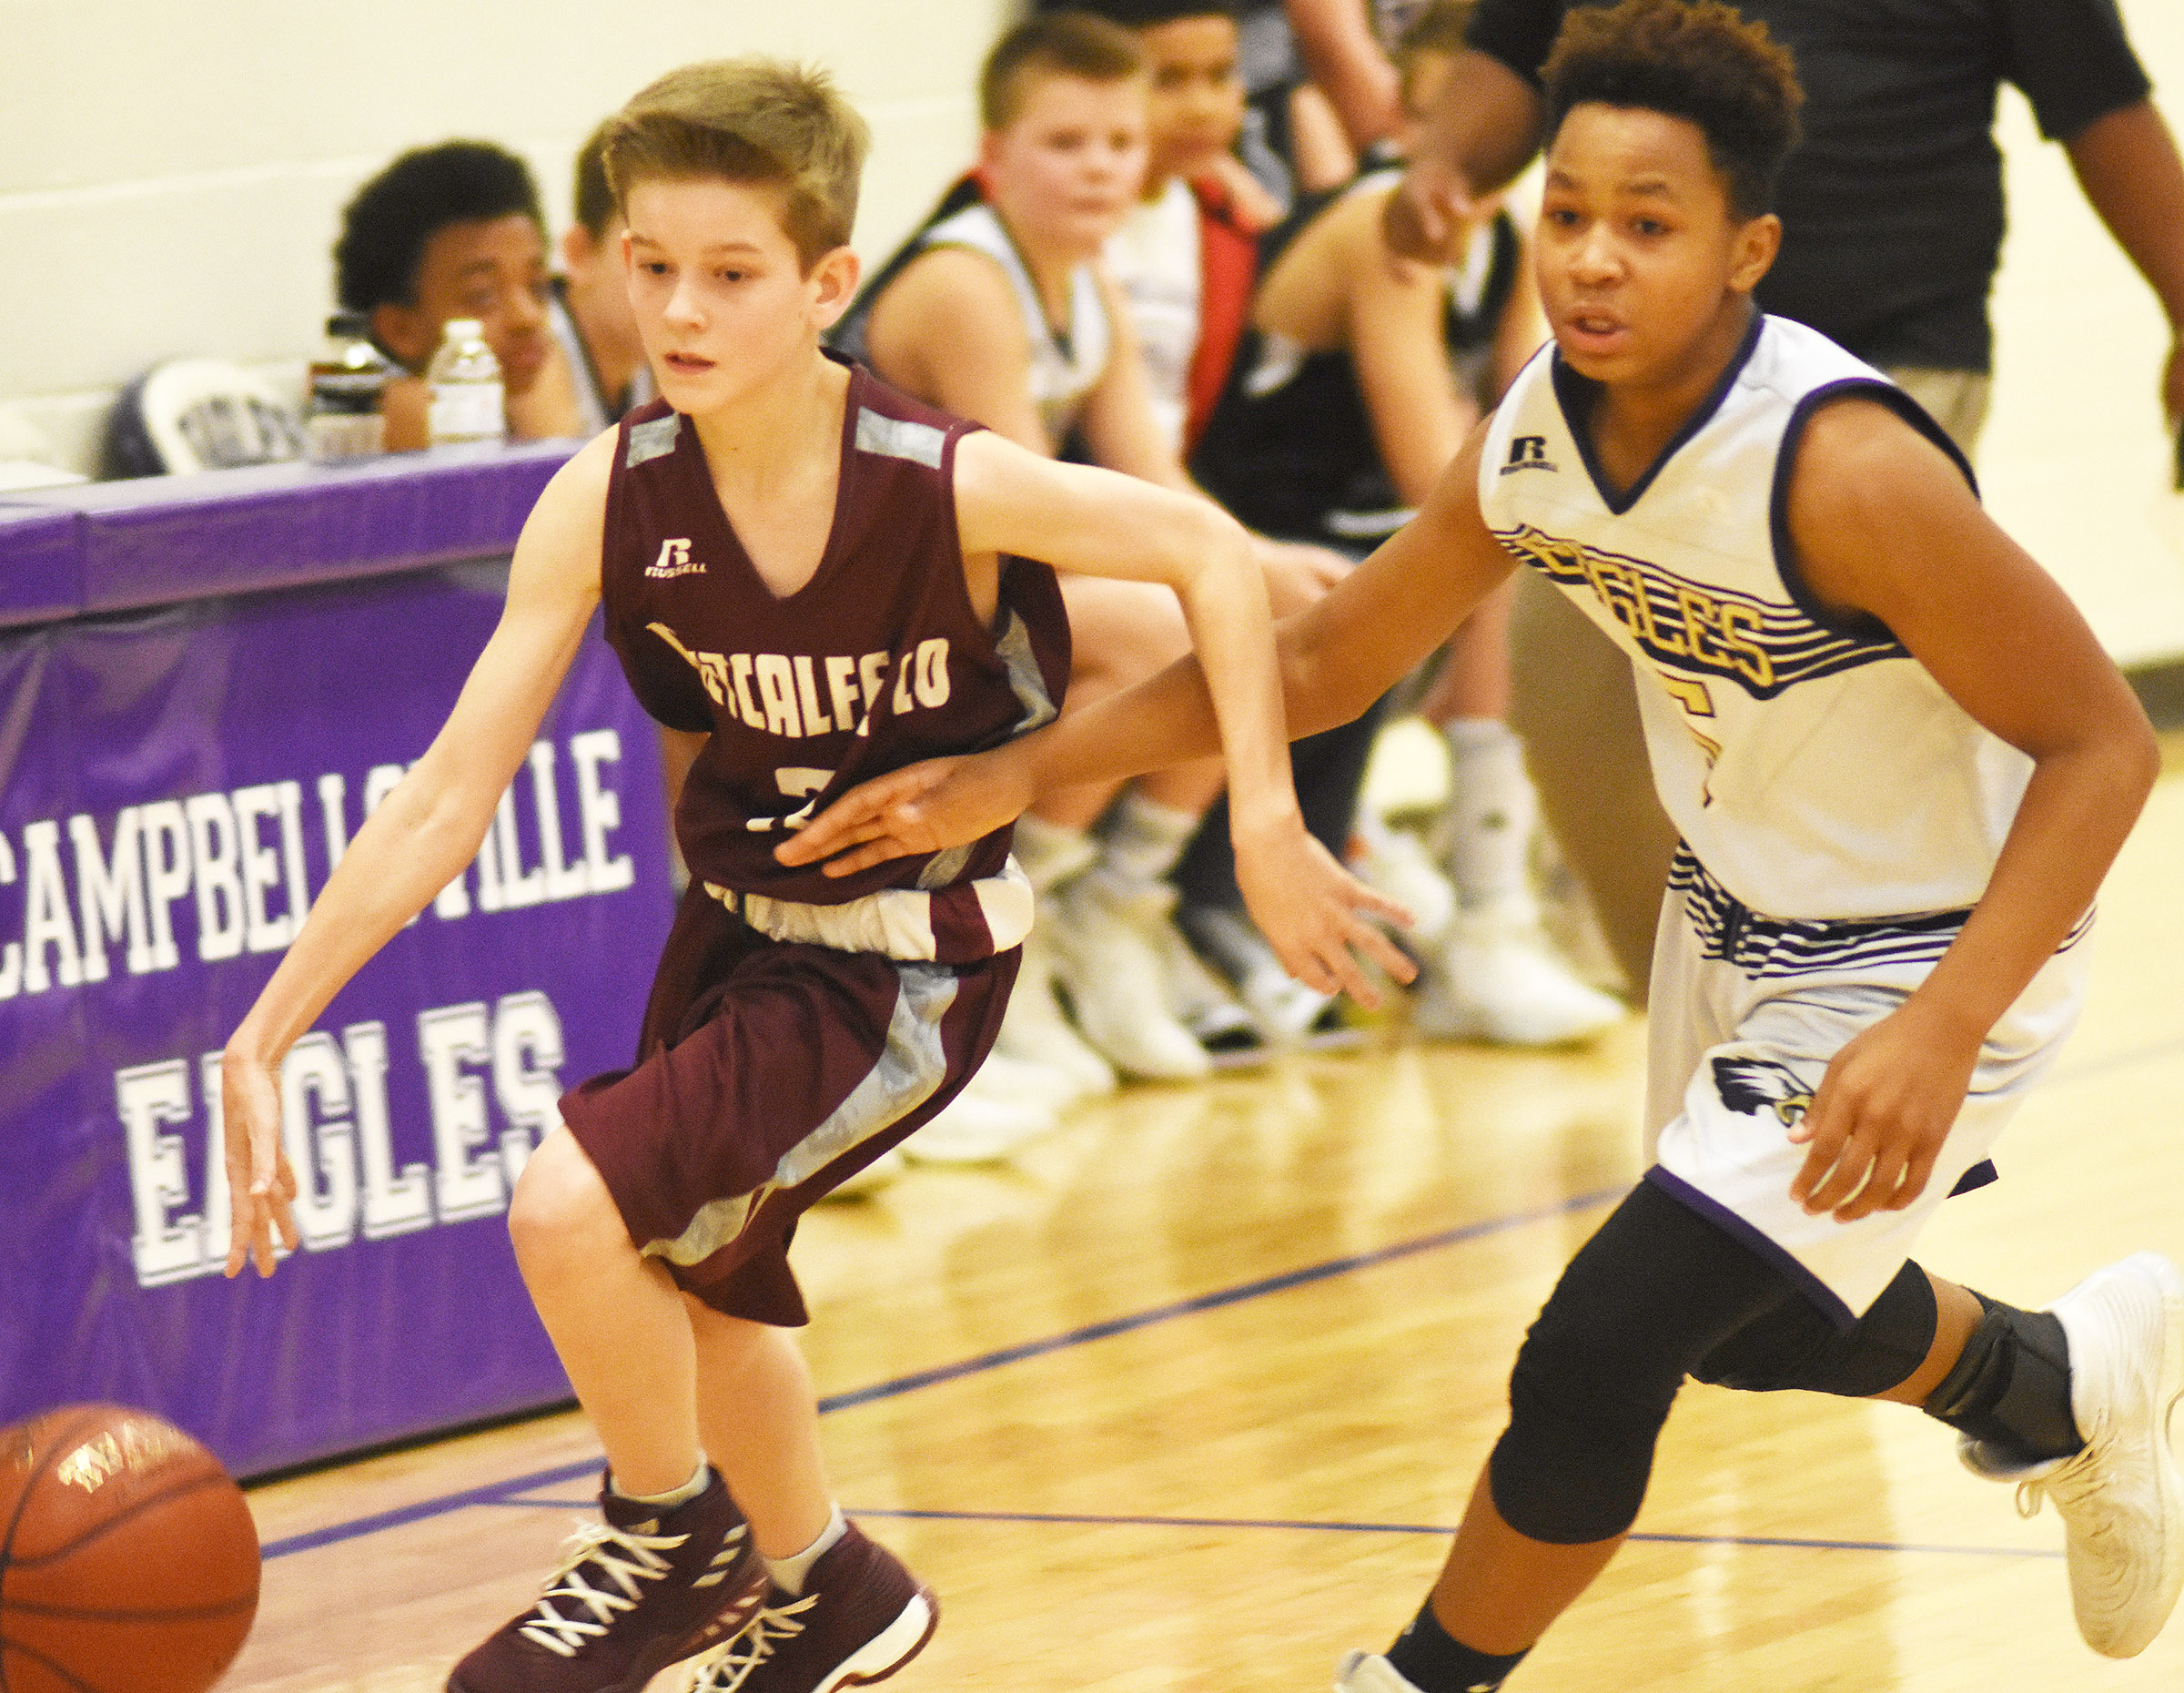 CMS seventh-grader Deondre Weathers plays defense.